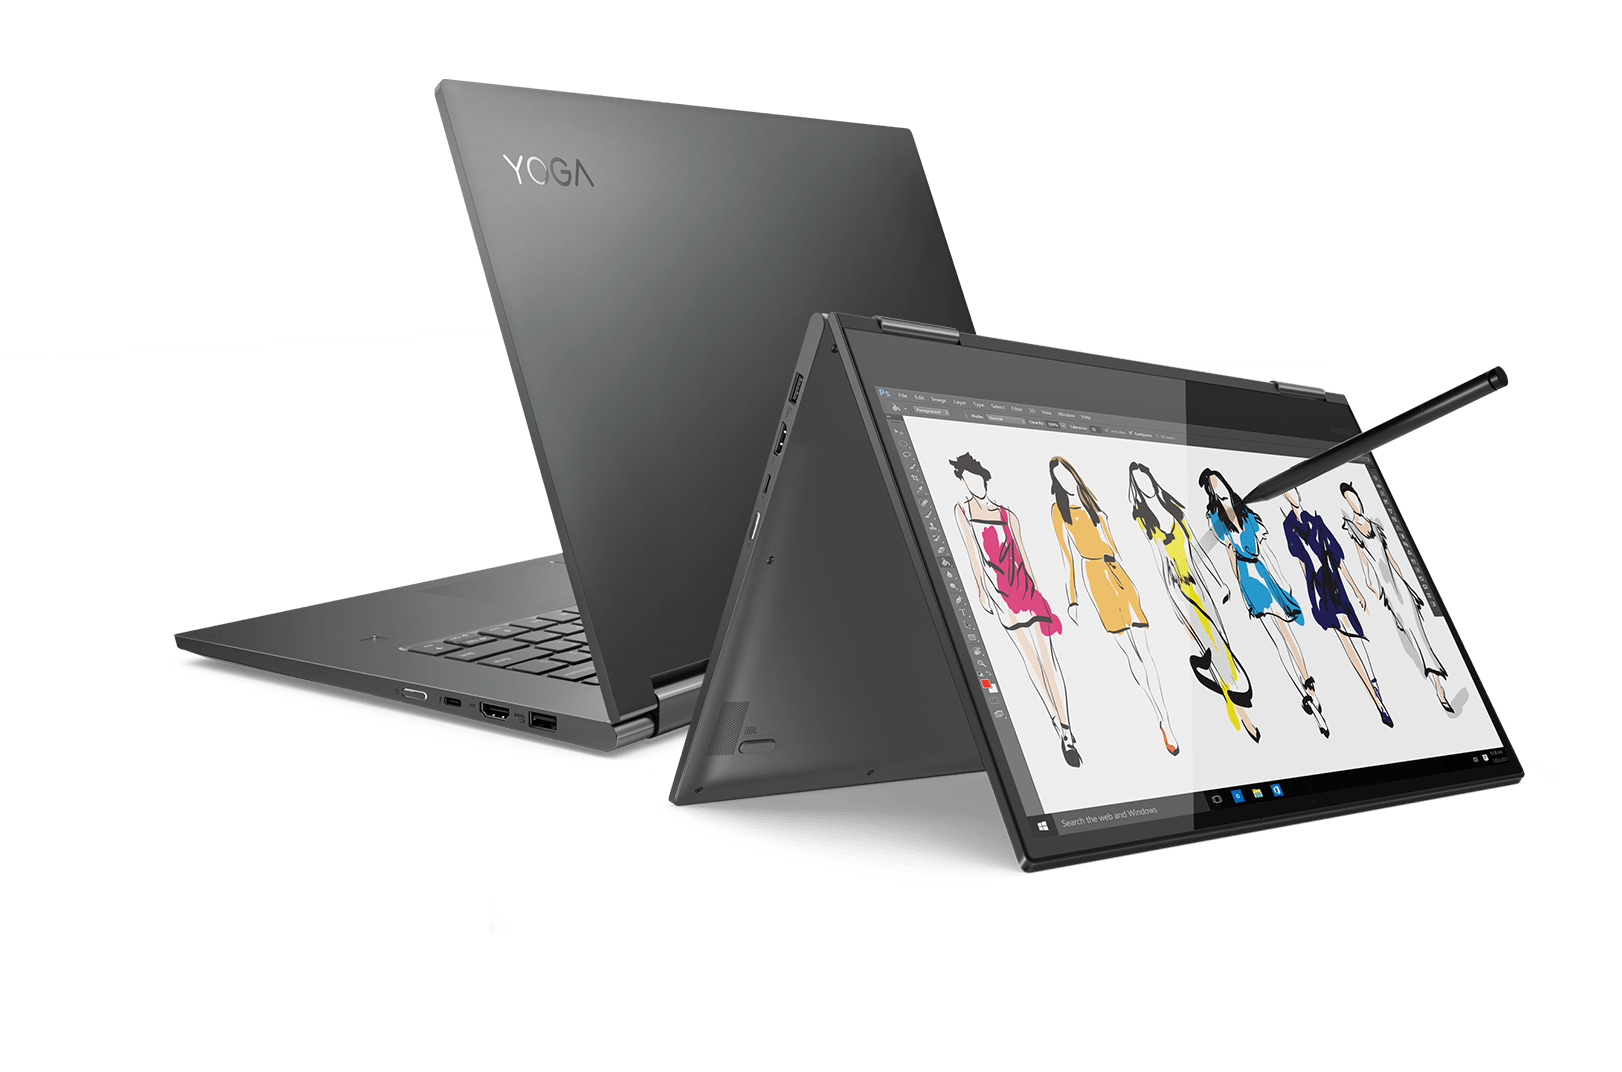 Lenovo Yoga 700 Series Laptop Front and Back Views